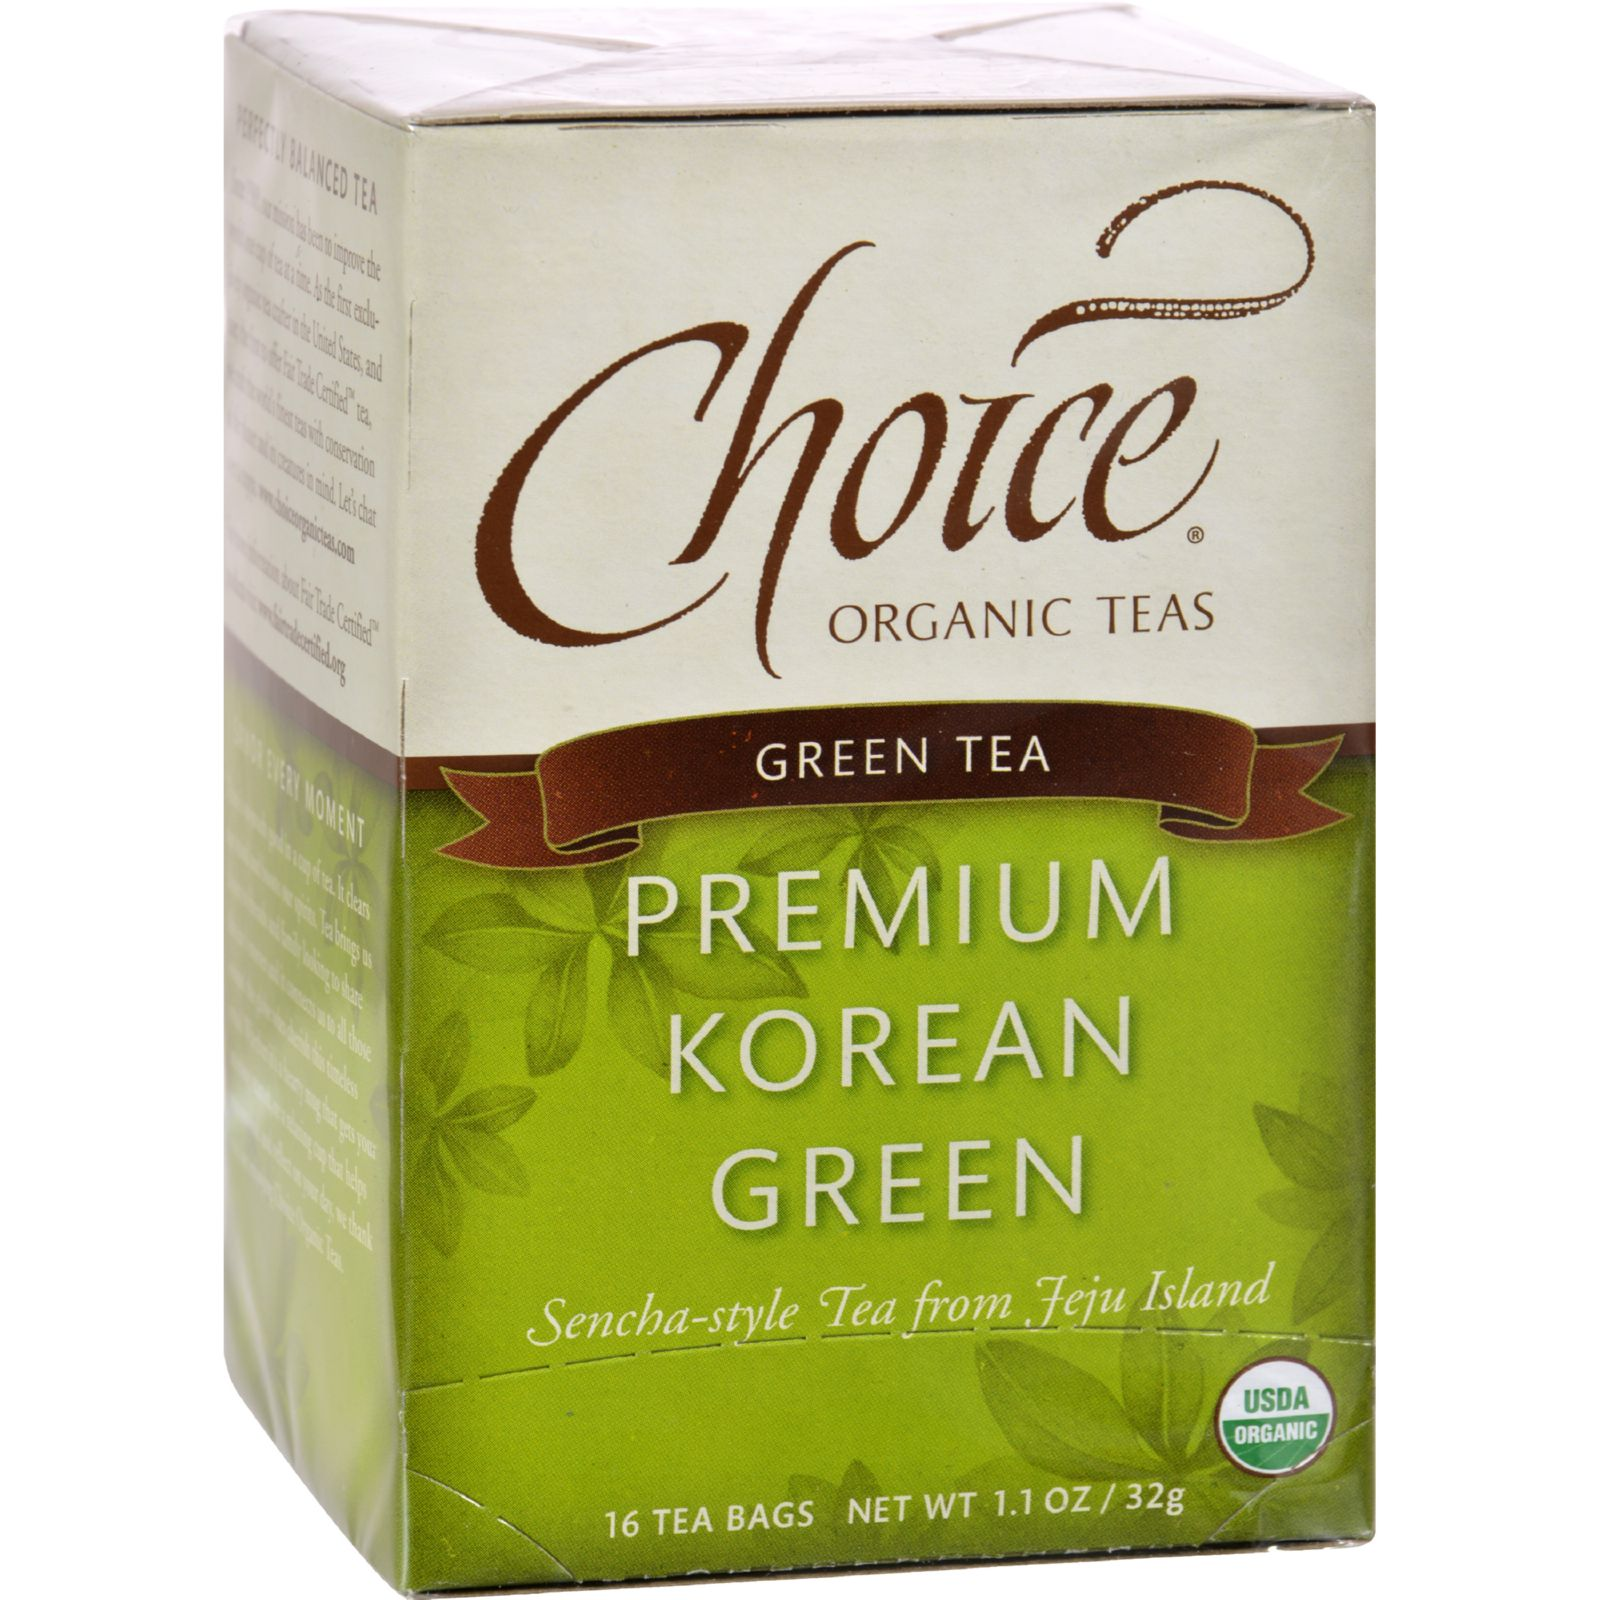 Choice Organic Teas Premium Korean Green Tea - Case of 6 - 16 Bags